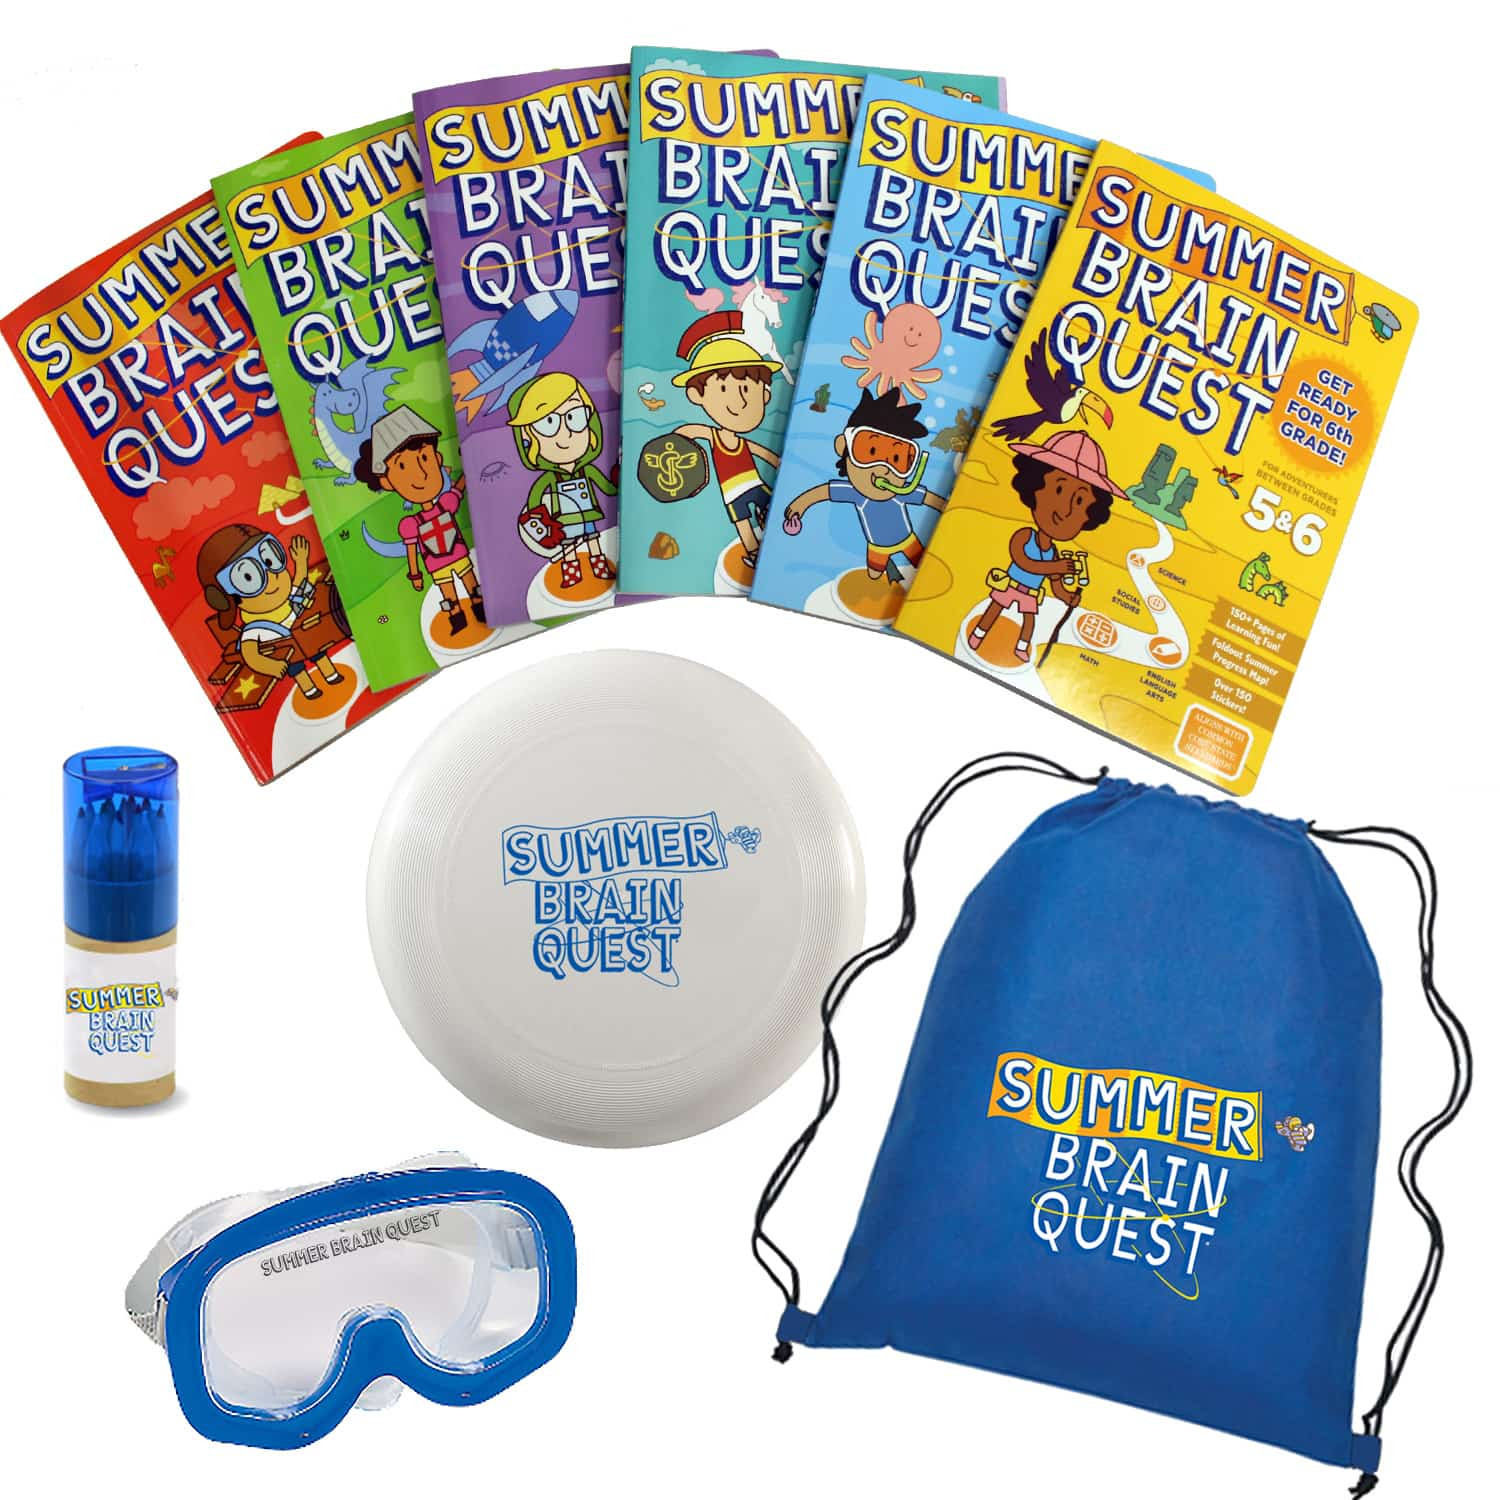 Summer Brain Quest Prize Pack